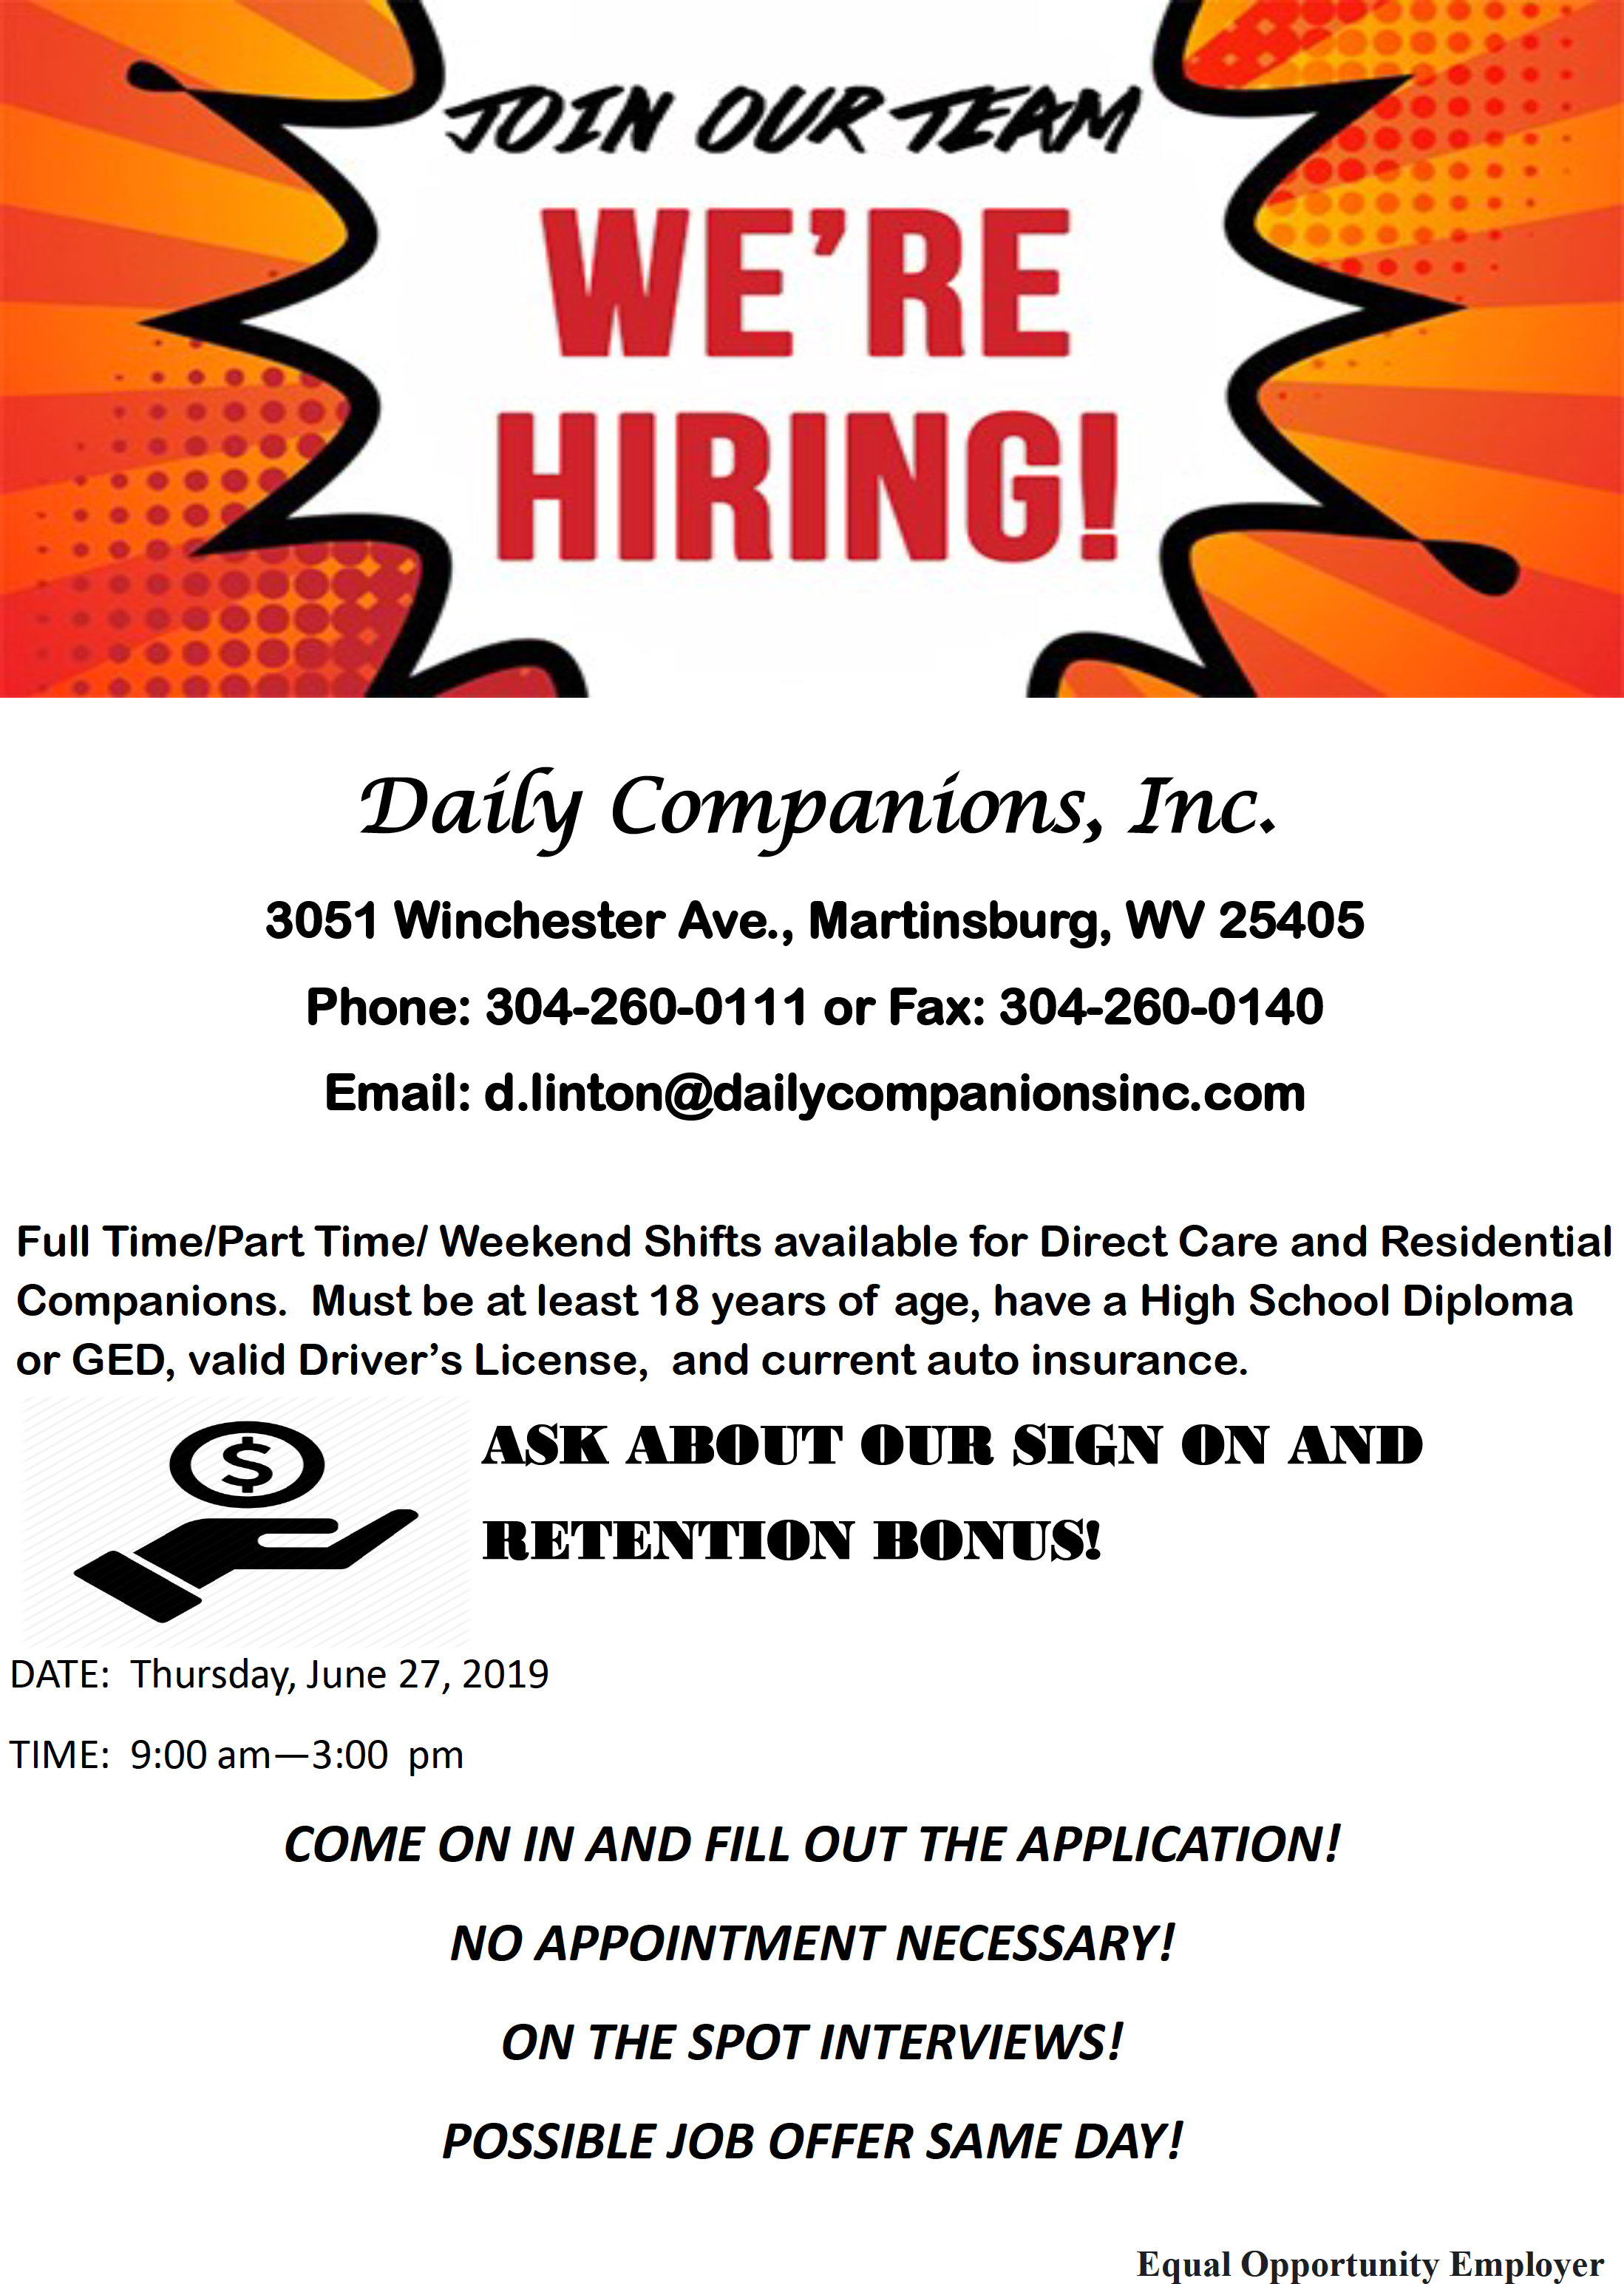 Daily Companions, Inc. Job Fair